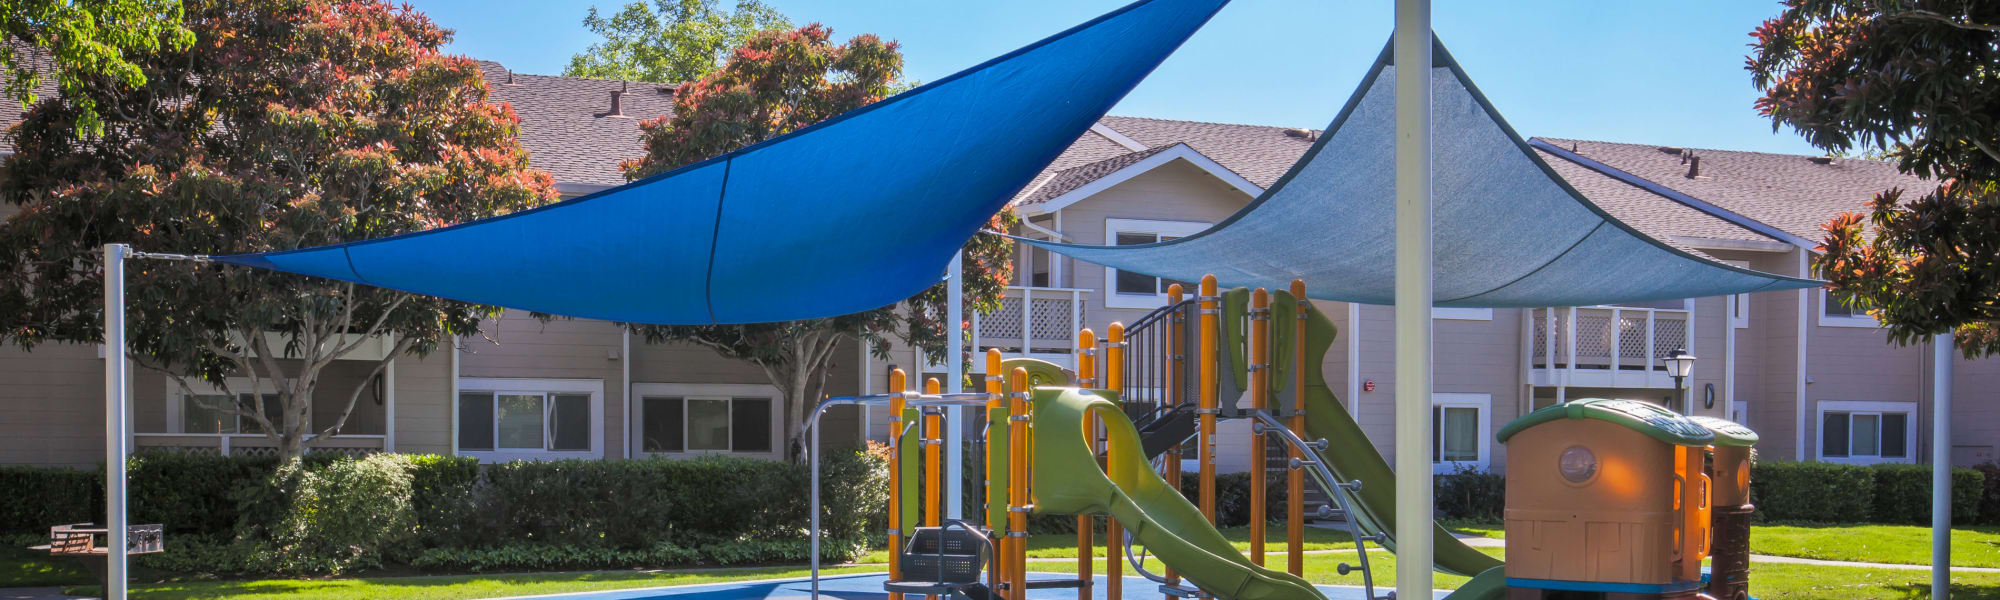 Amenities at Cypress Pointe Apartments in Gilroy, California